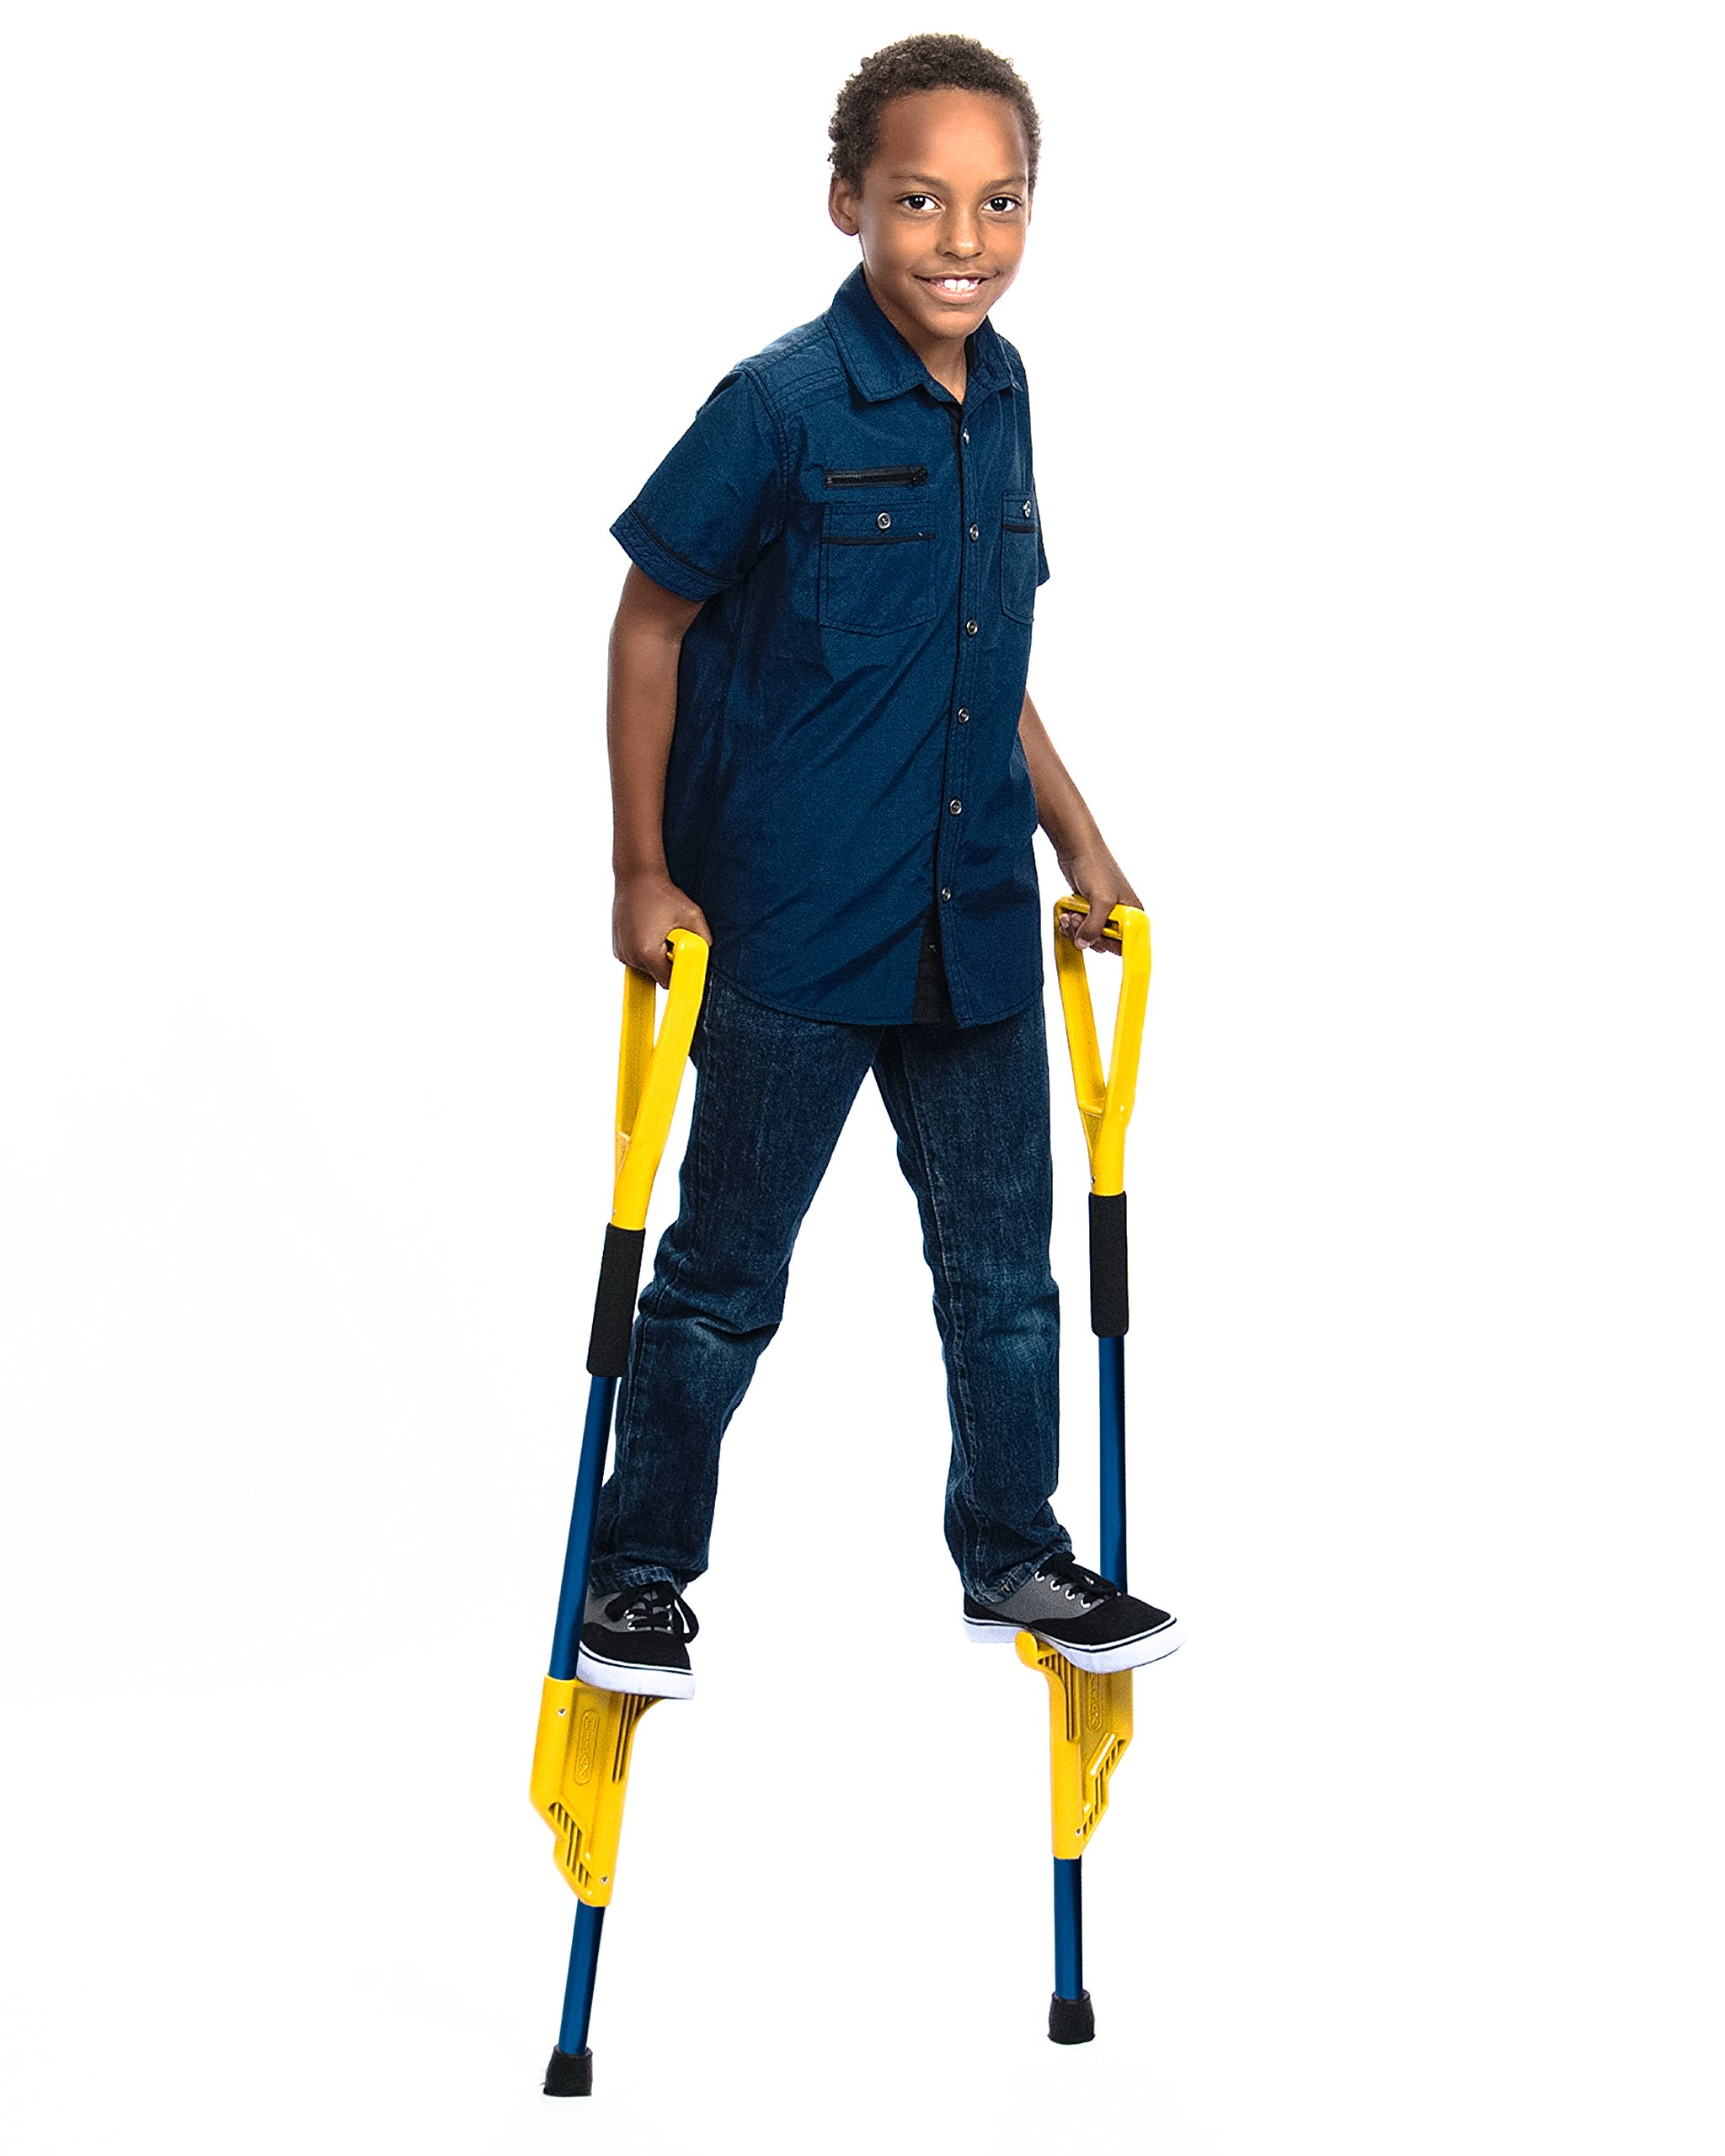 Hijax Junior Size American Stilts for Active Kids (Blue)